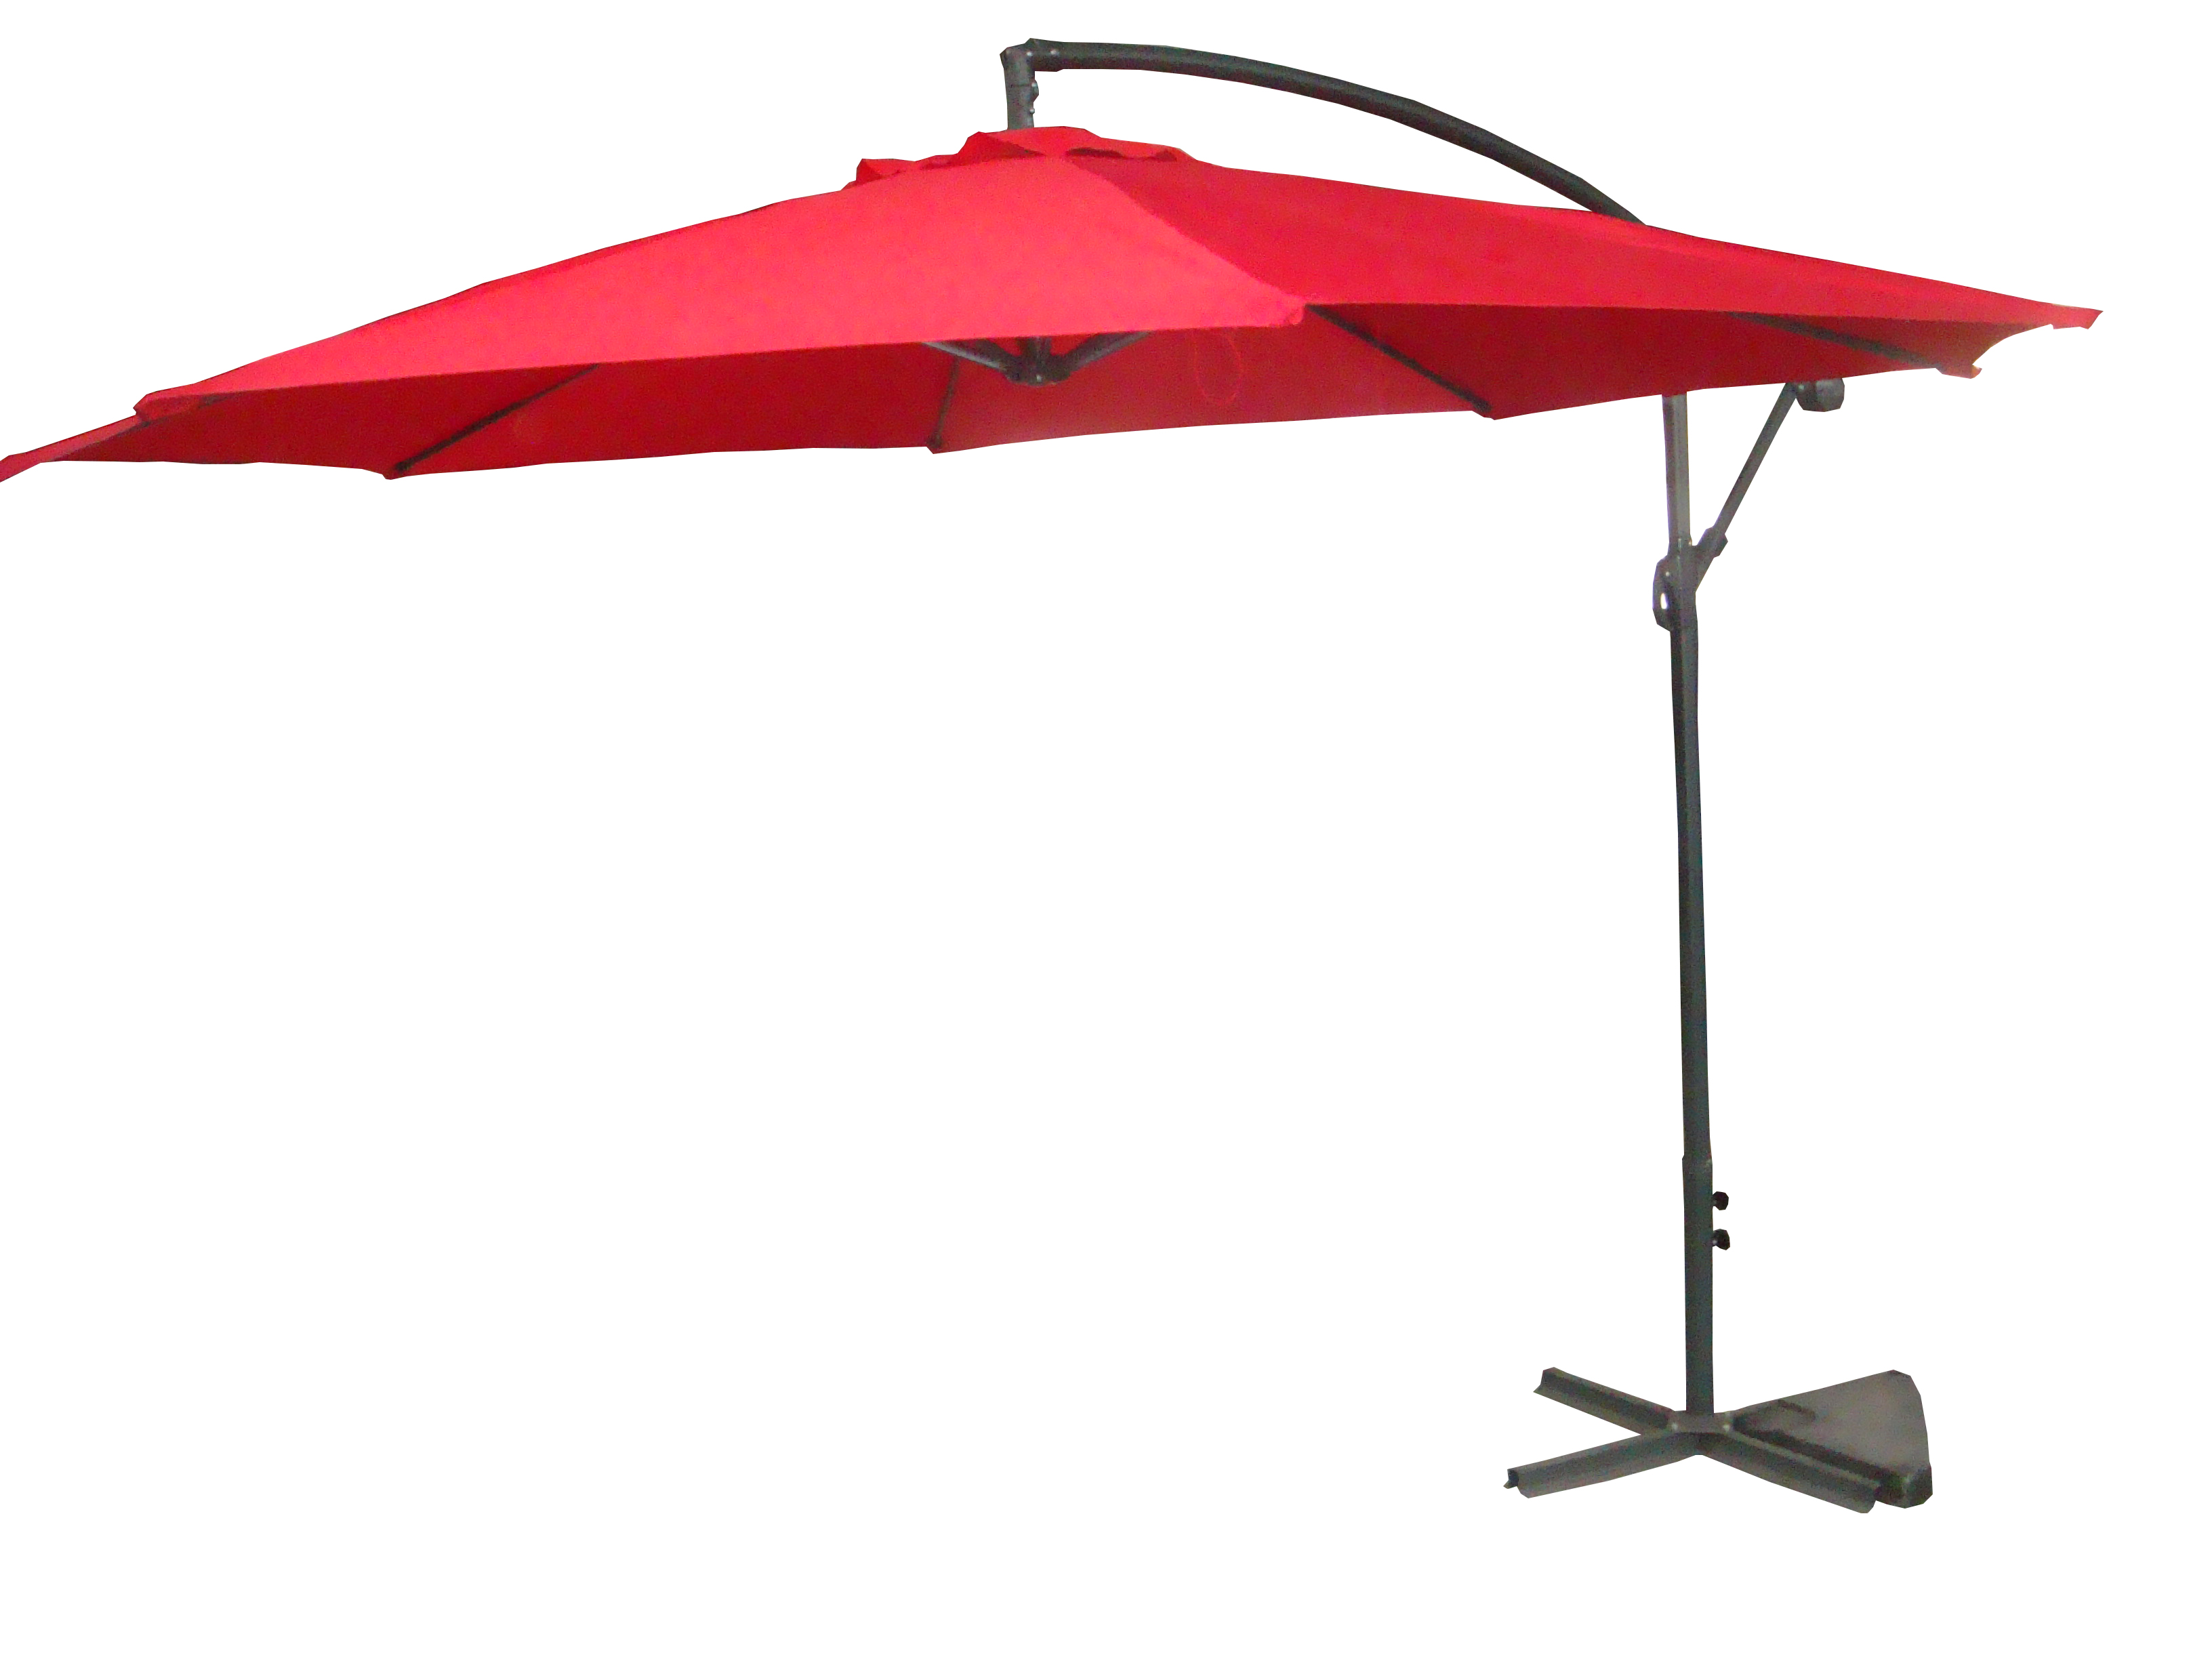 Best Patio Umbrella How To Select The Best Patio